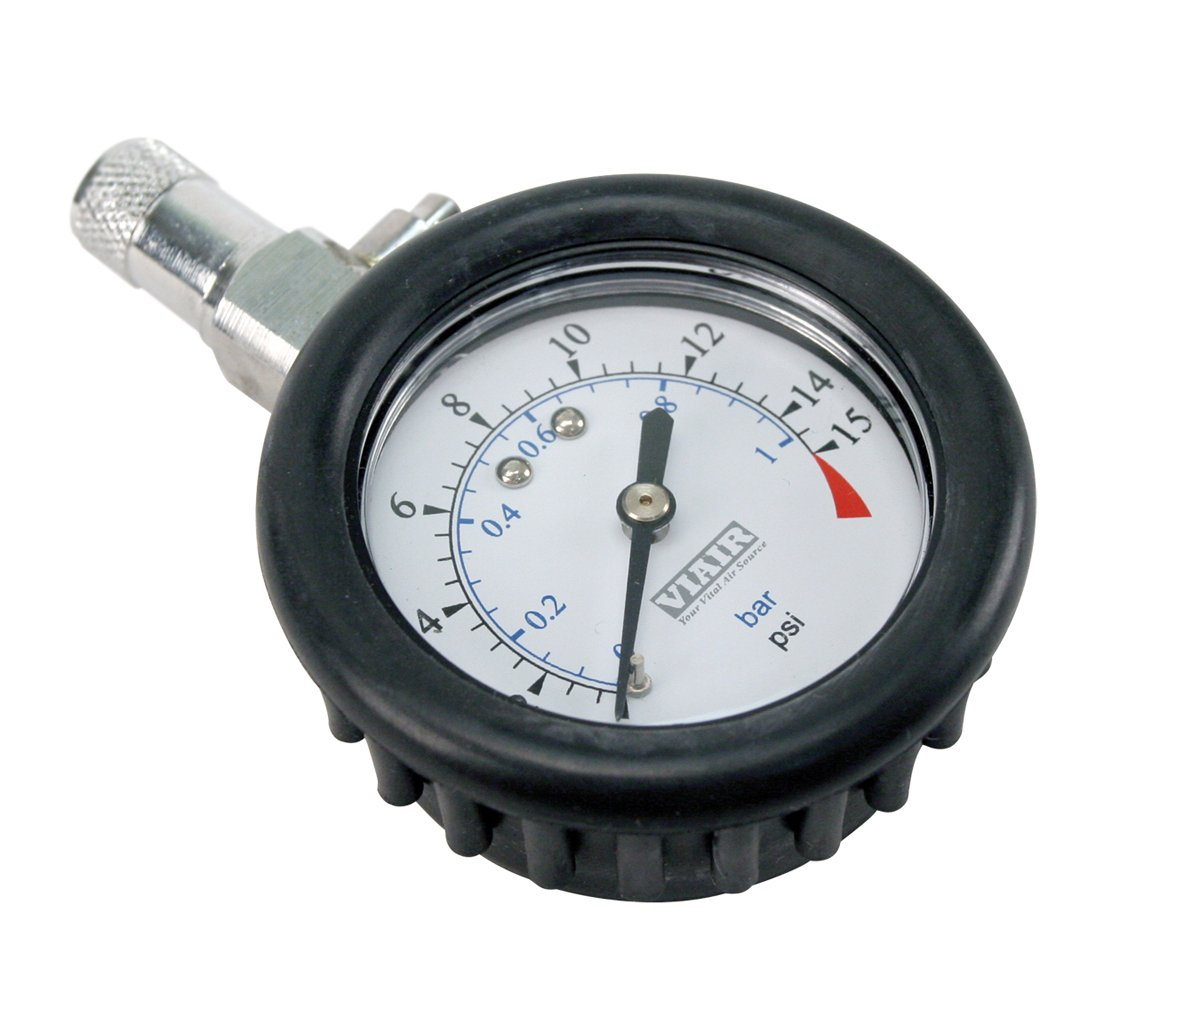 0 to 15 PSI Tire Gauge with Boot VIAIR 90058 2.0